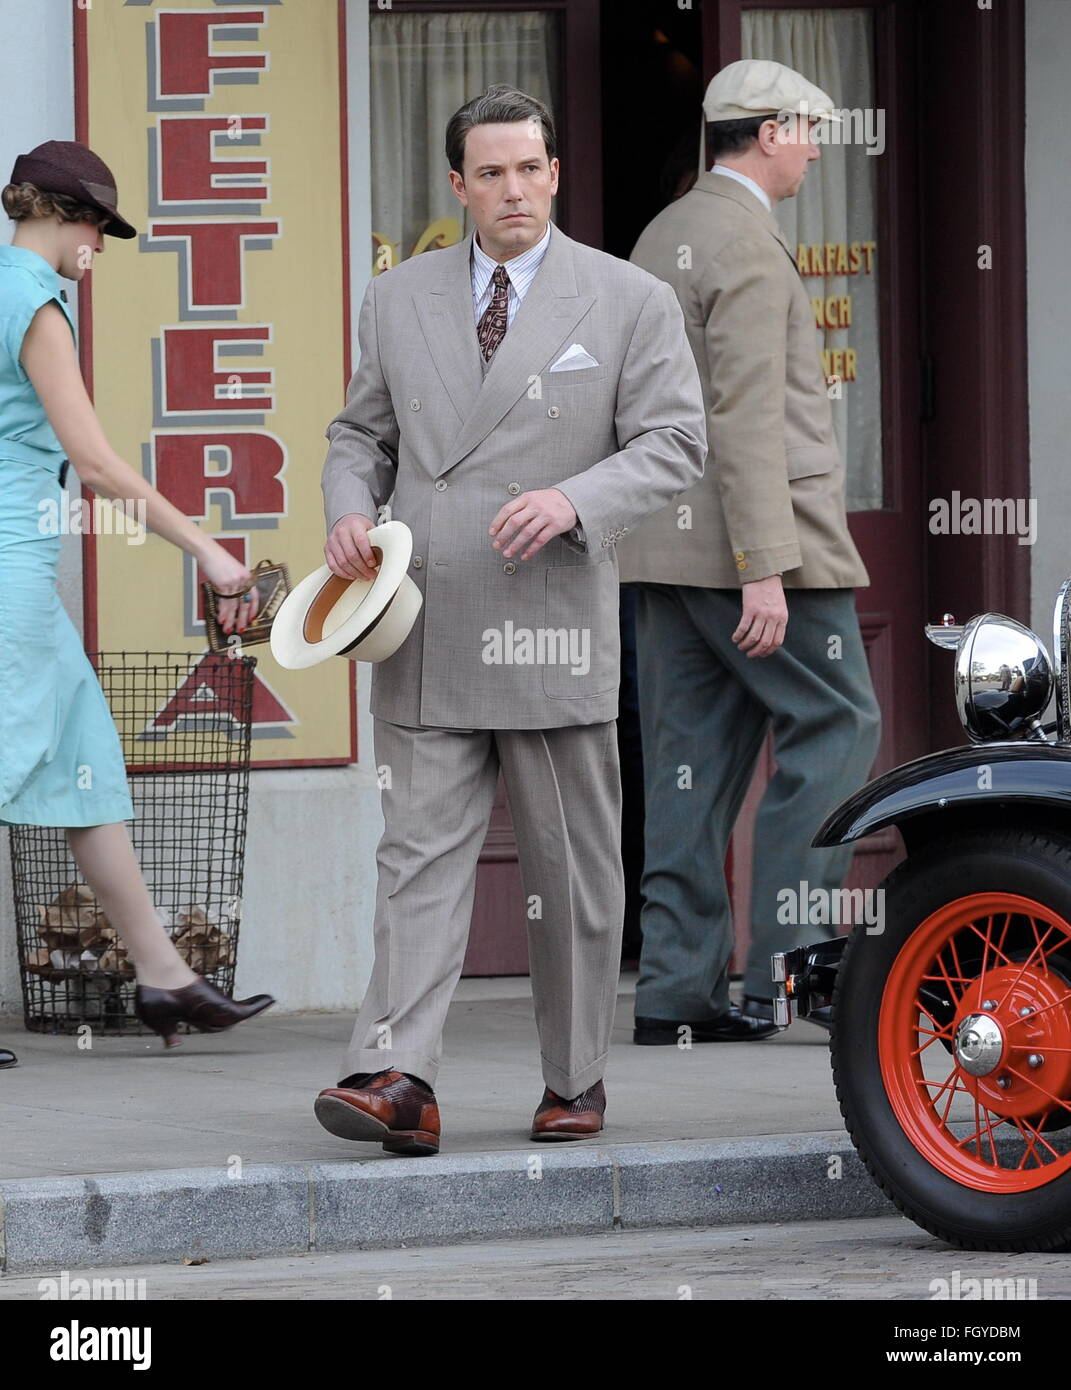 Actor Ben Affleck Wearing 1920s Attire For A Scene In His Upcoming